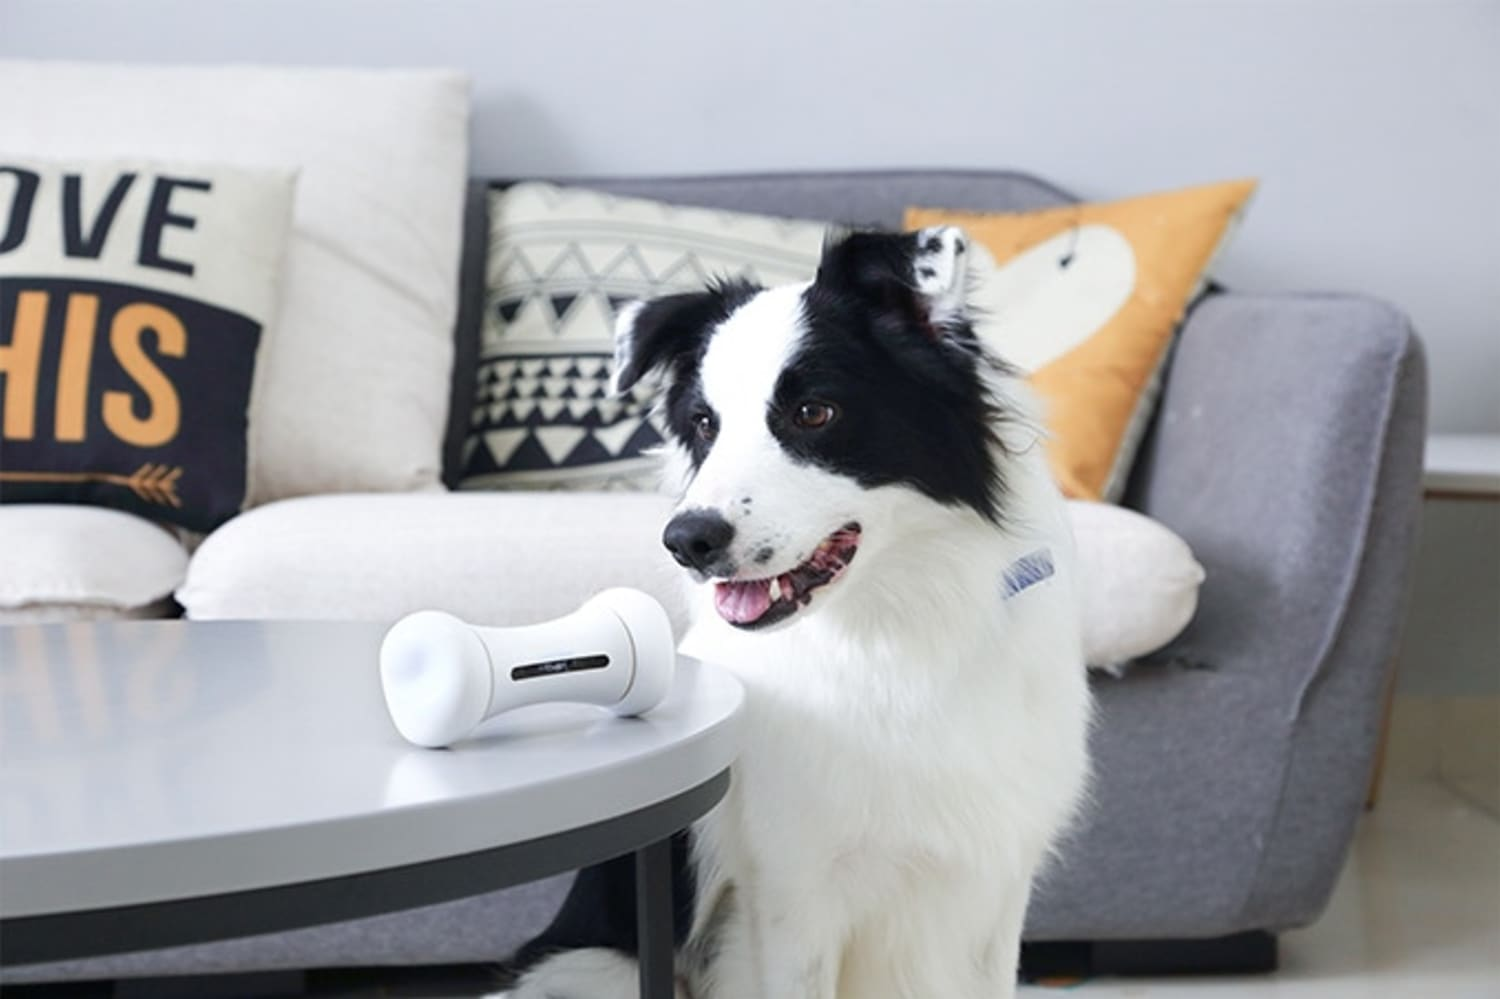 This Robot Dog Toy Wants to Help Your Pet's Anxiety When You're Busy